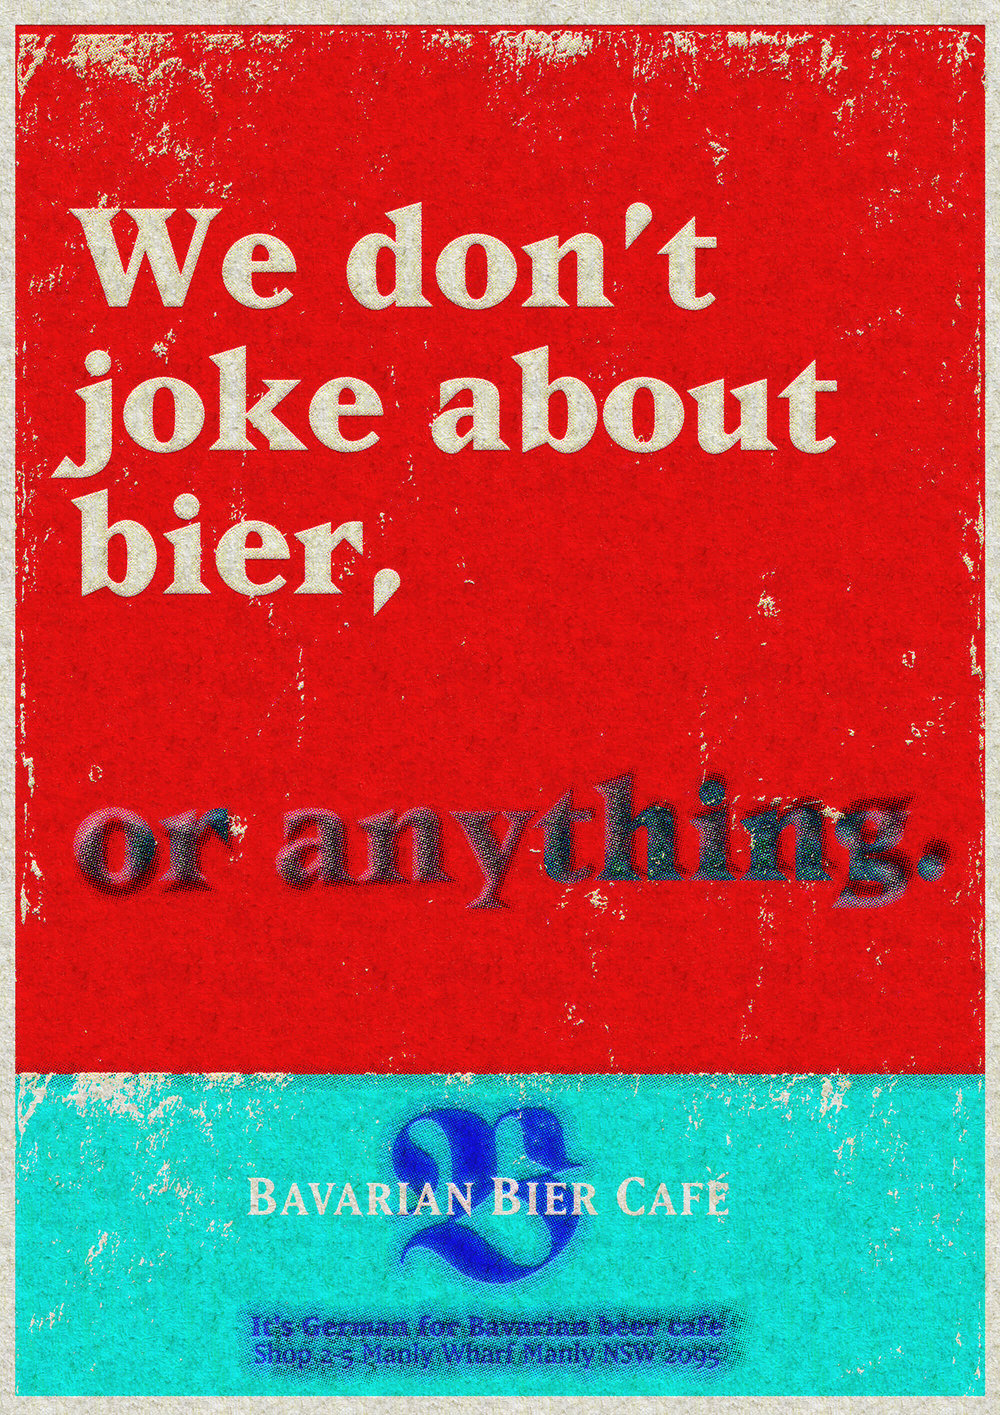 Bavarian Bier Café: print Ad. We don't joke about beer. Or anything.